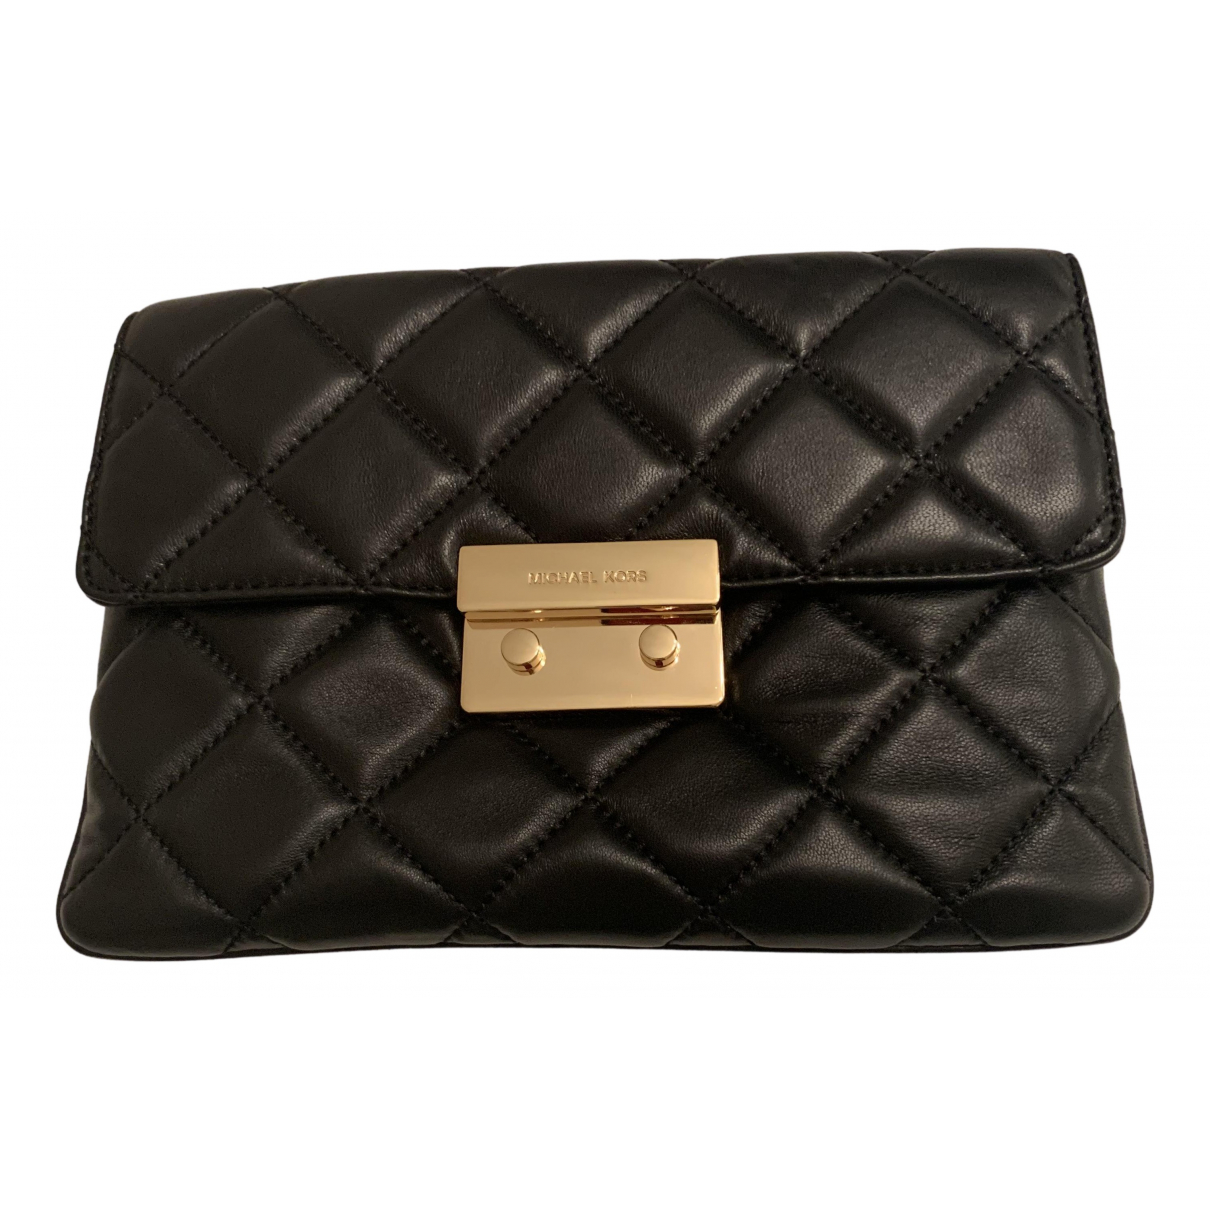 Michael Kors N Black Leather Clutch bag for Women N